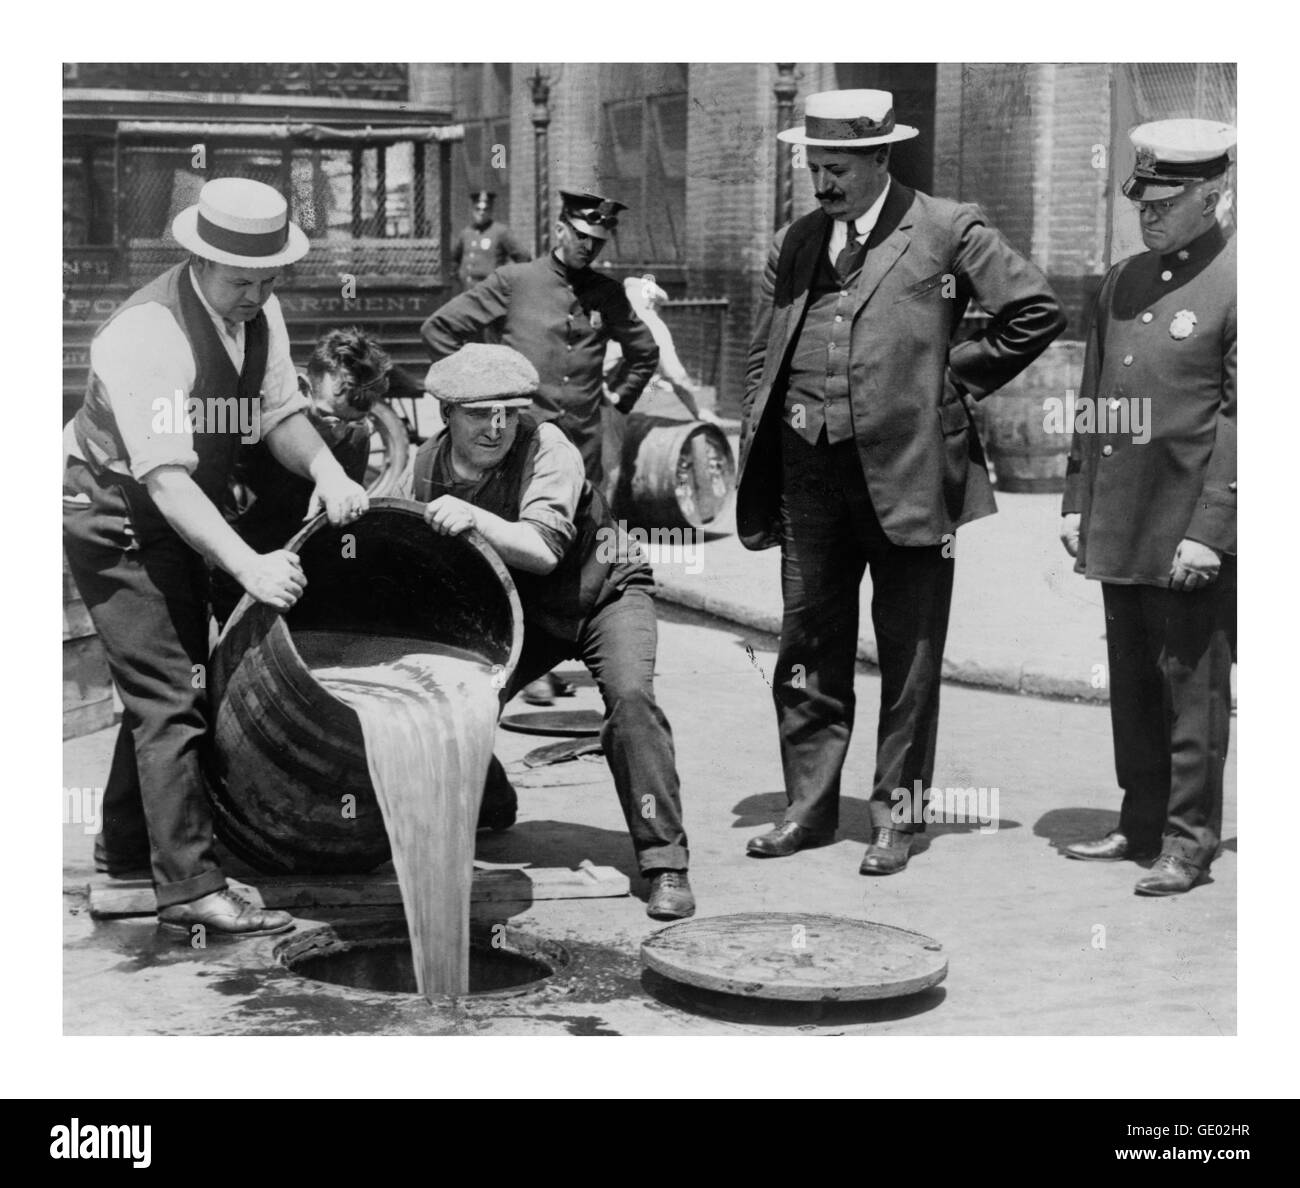 Alcohol is poured down the sewers during 1919 prohibition and bootlegging days in the USA - Stock Image